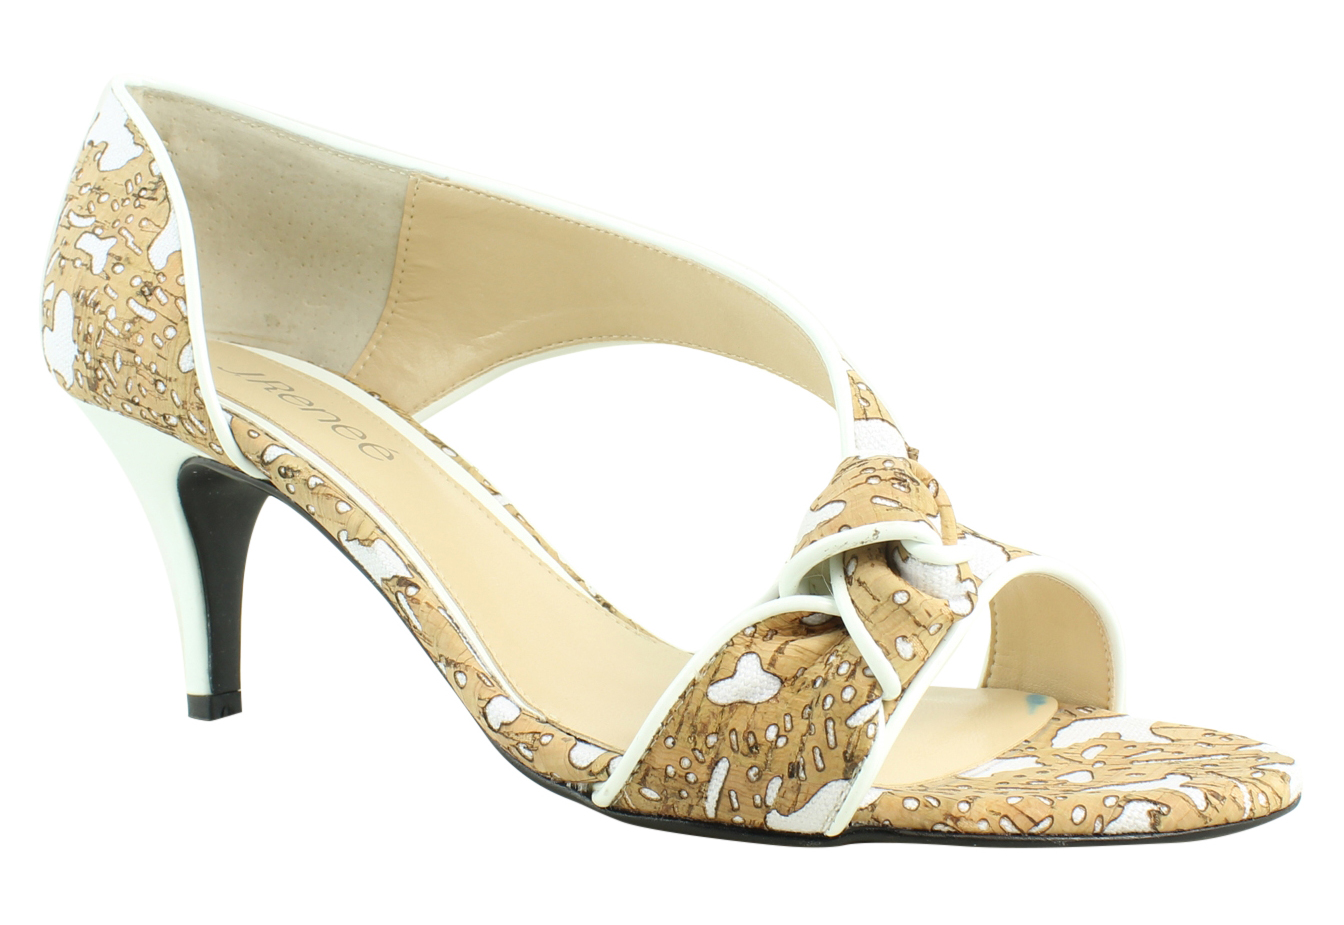 New J. Renee Womens Jaynni-Cocow Cork White Sandals Size 9 Wide (C, D, W) by J. Renee